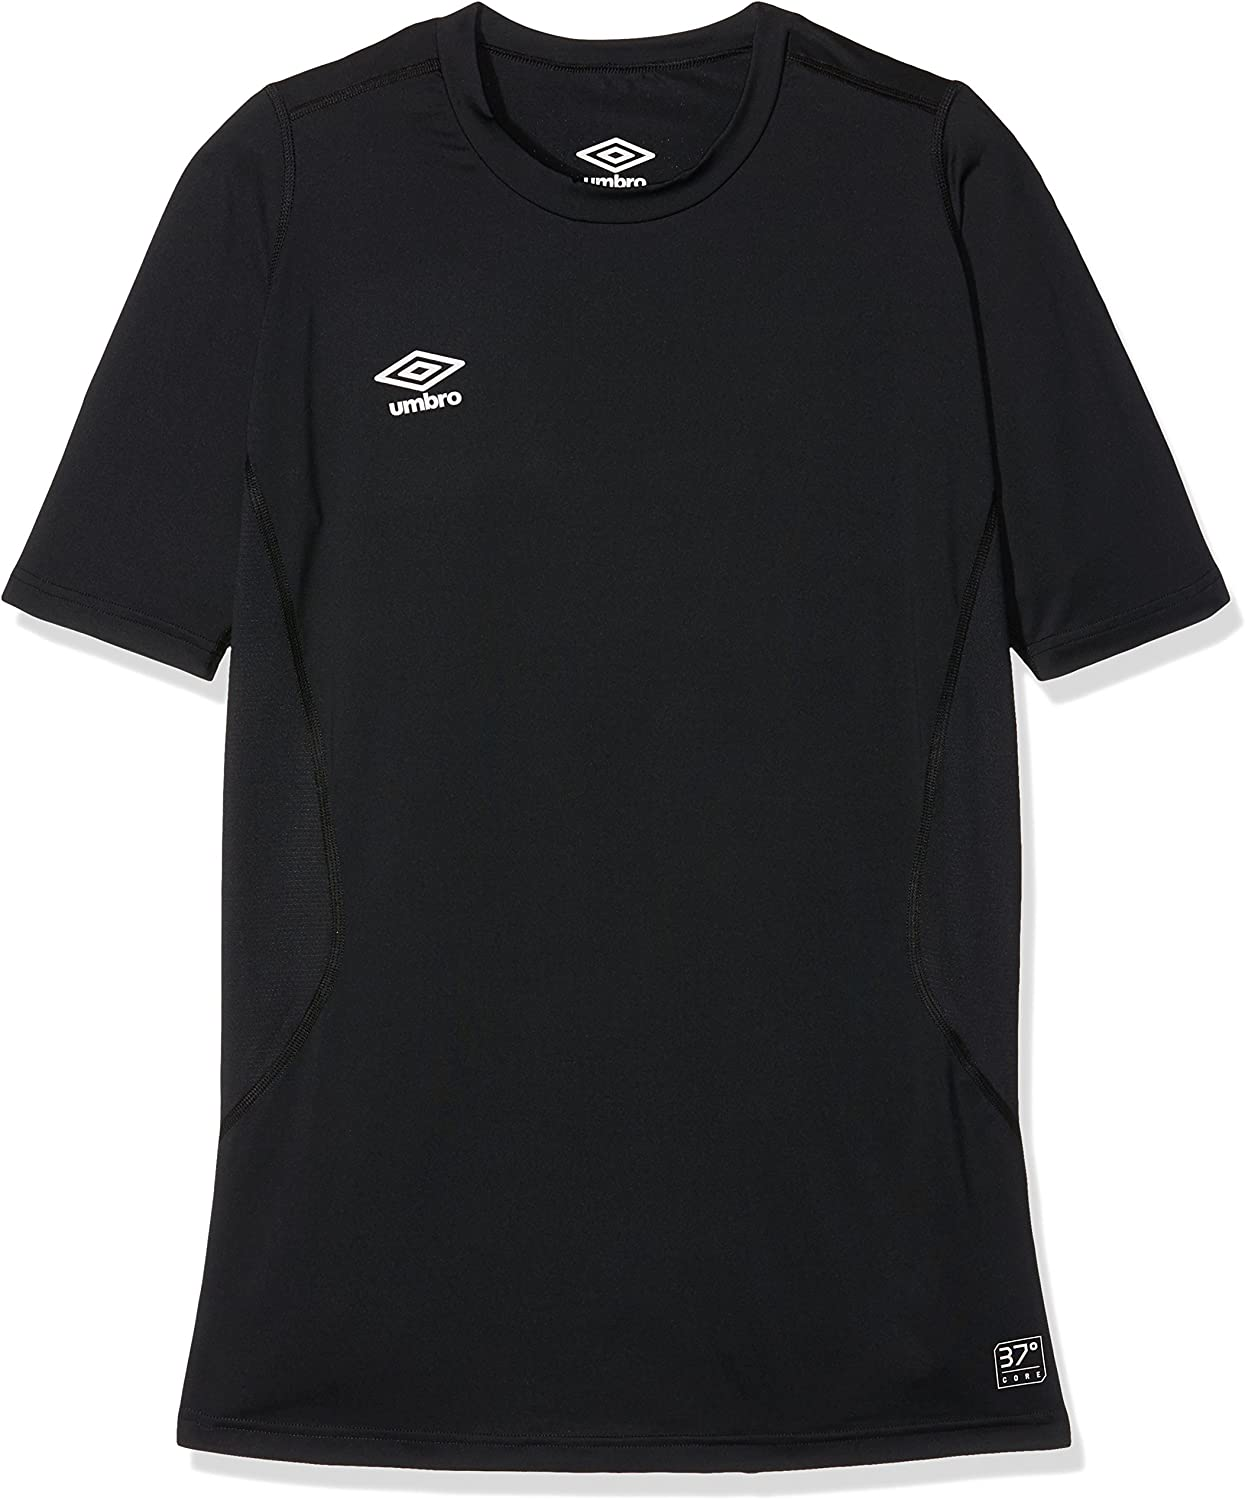 umbro base layer shorts